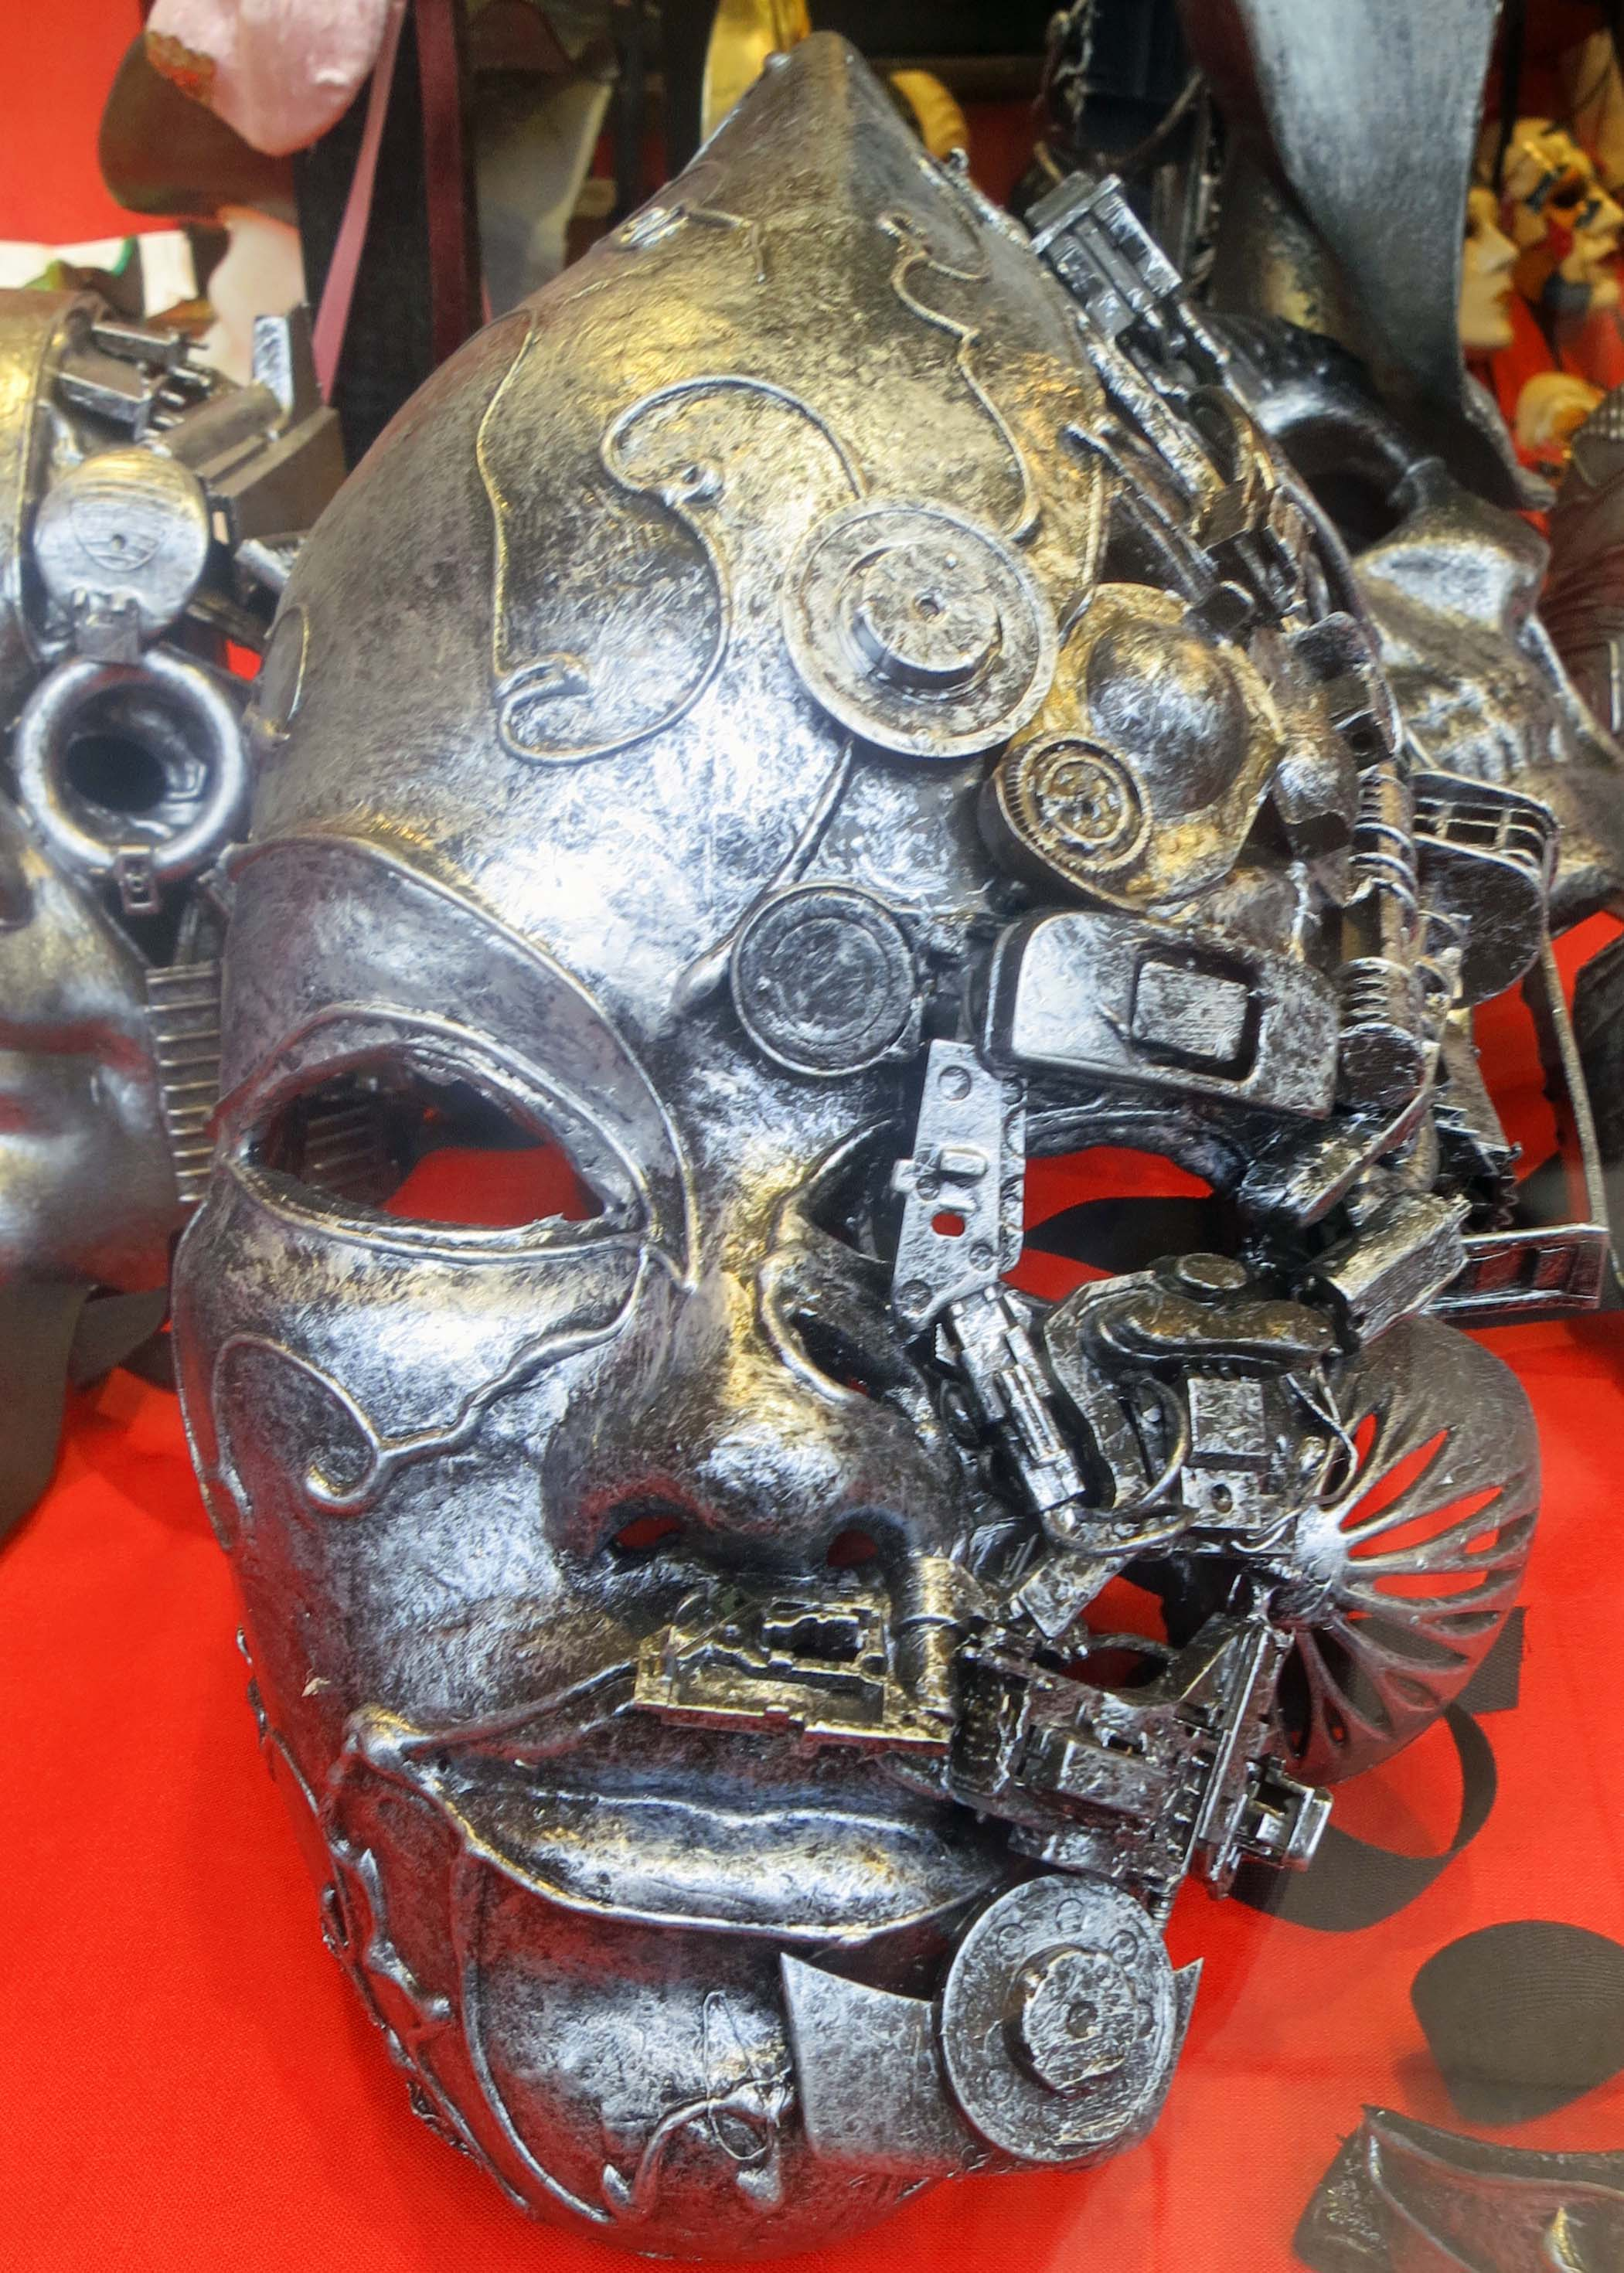 I will conclude with this modern mask of part man and part machine... a scary prediction of the future?